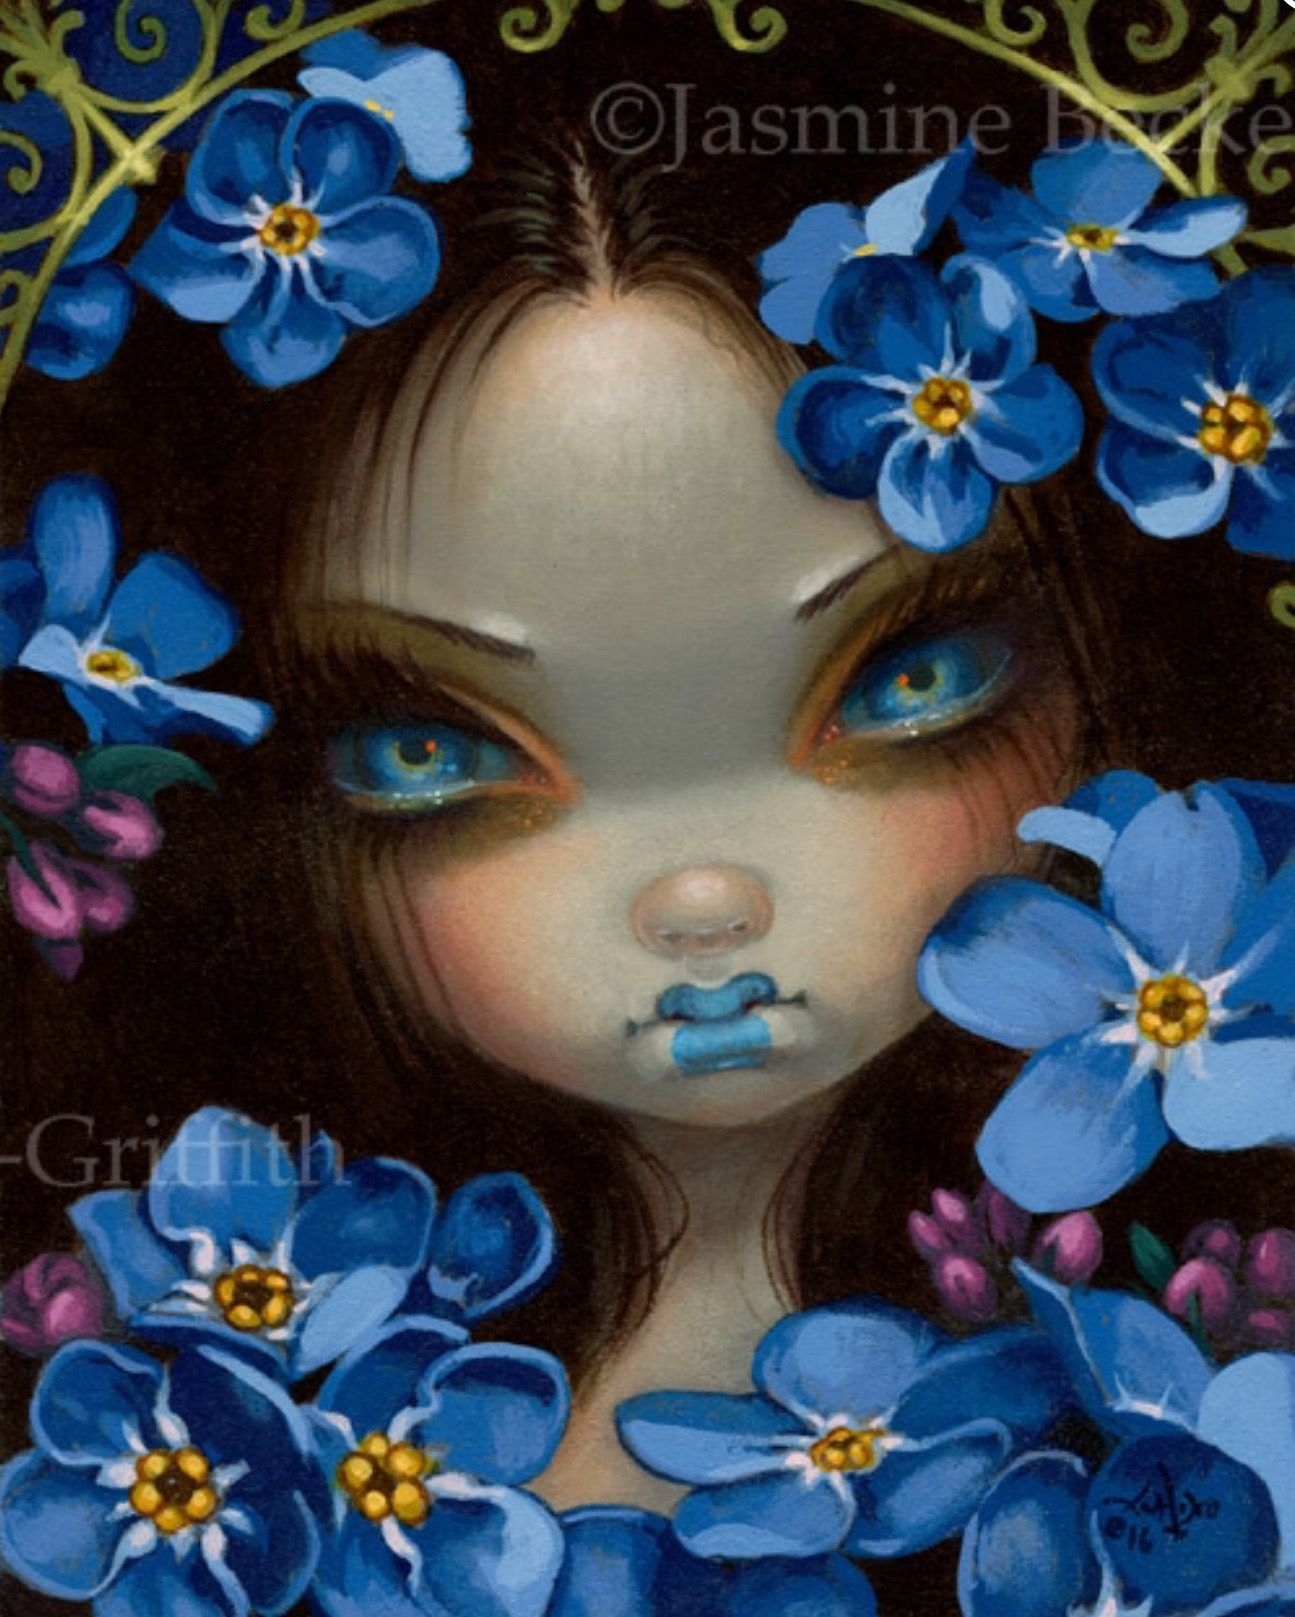 Pin By Eda Burdurluolu On Jasmine Becket Griffith Pinterest